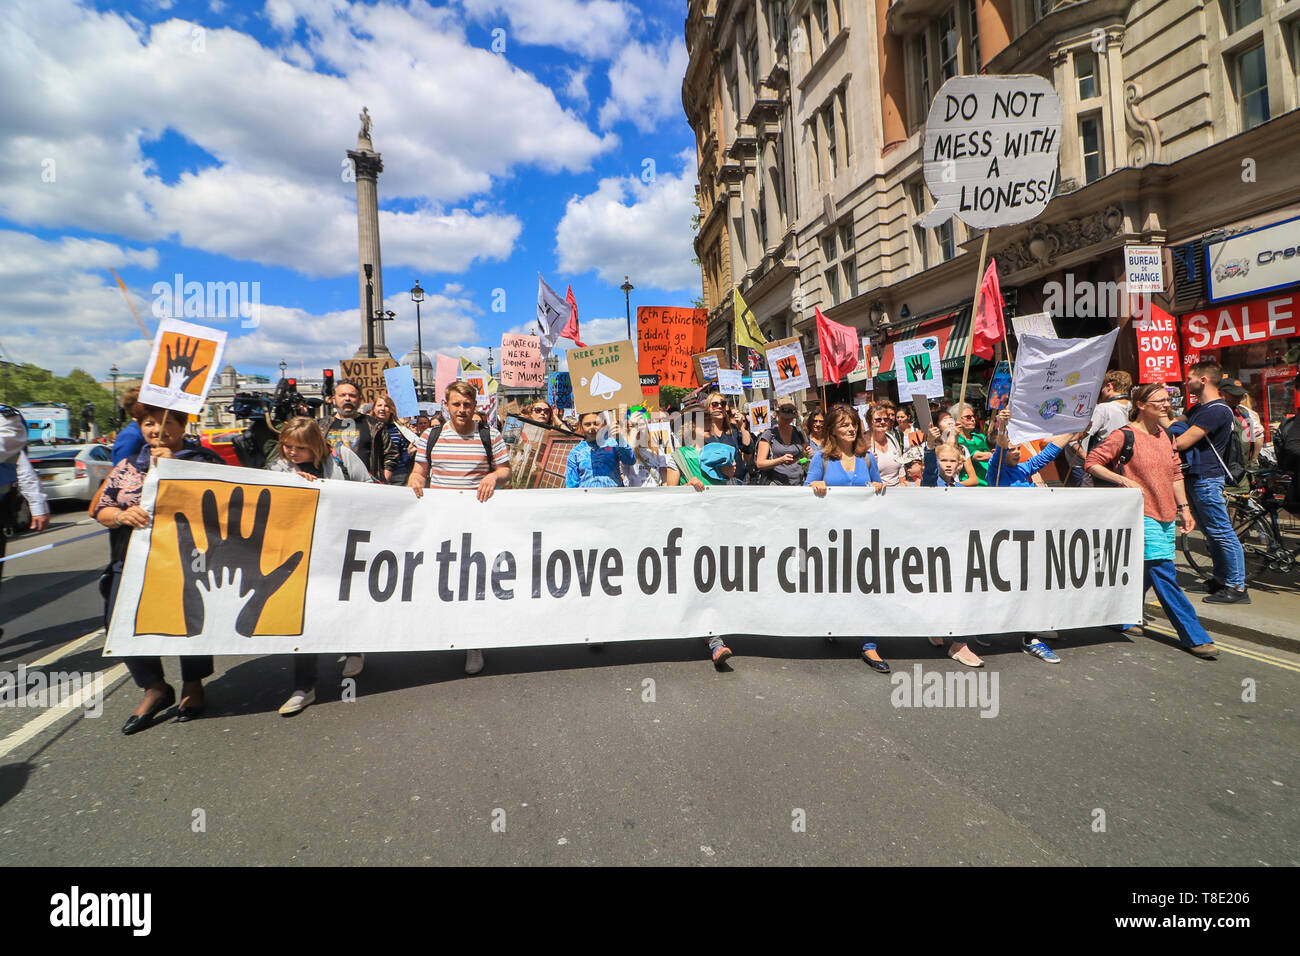 """London, UK. 12th May, 2019. Thousands of parents, accompanied with children  and their families marched  in central London to demand urgent action to tackle climate change after British health secretary Matt Hancock named """"dirty air"""" as the """"largest environmental risk to public health in the UK"""" and warned of a growing national health emergency triggered by the """"slow and deadly poison"""" of air pollution. Credit: amer ghazzal/Alamy Live News - Stock Image"""